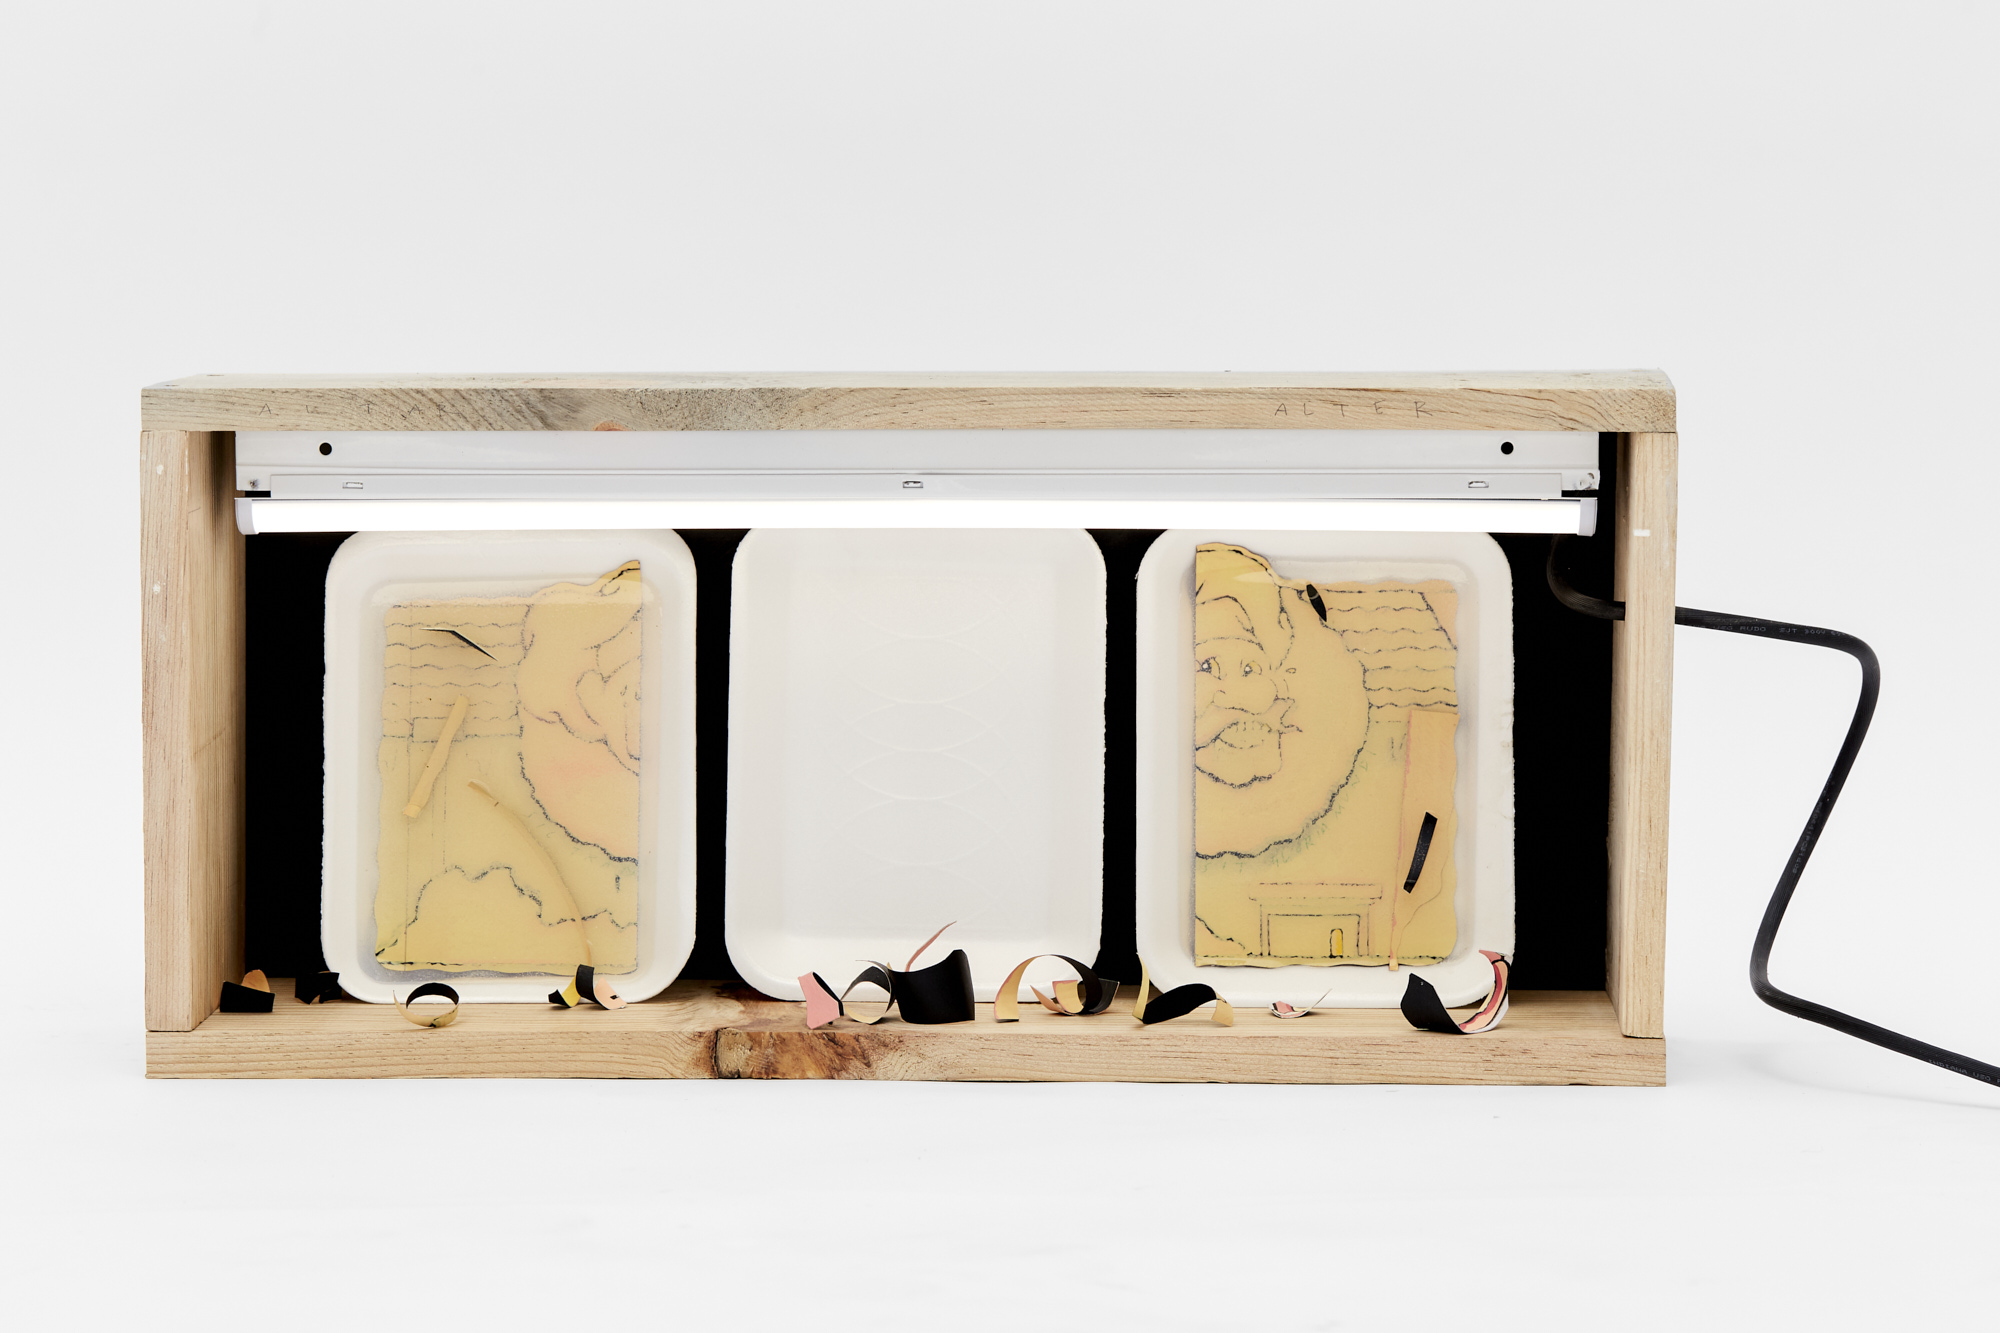 Charlie Godet Thomas, Takeaway (Altar Piece, Alter Piece), 2020. Wood, cast rubber, paper, acrylic paint, watercolour pencil, electrical fitting, bulb, paper offcuts, polystyrene. 29 x 64 x 15 cm.